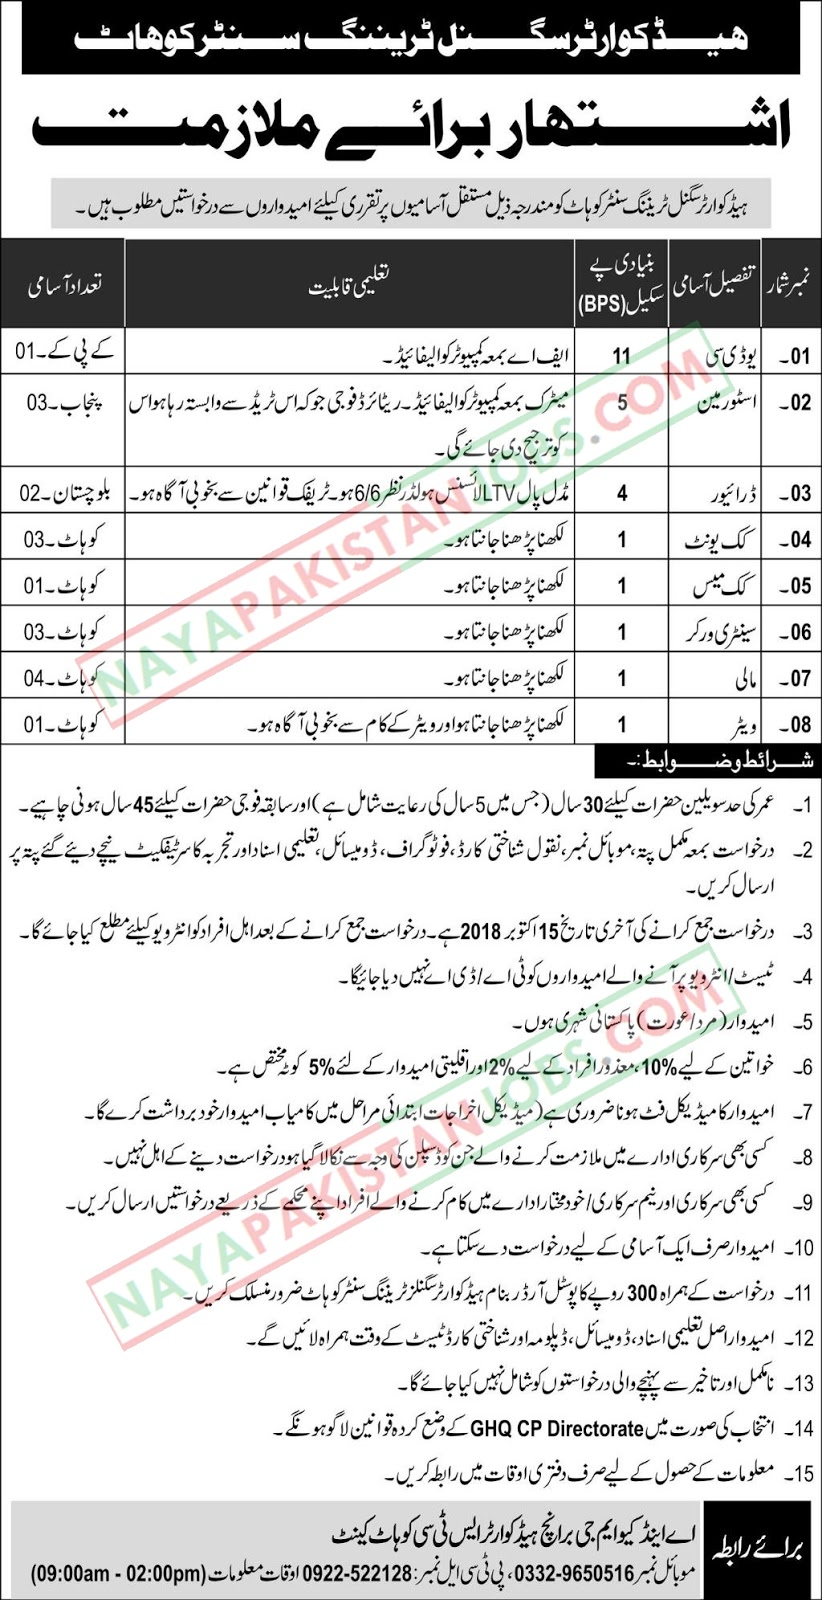 Latest Vacancies Announced in Pakistan Army at Headquarter Signal Training Center Kohat 30 September 2018 - Naya Pak Jobs